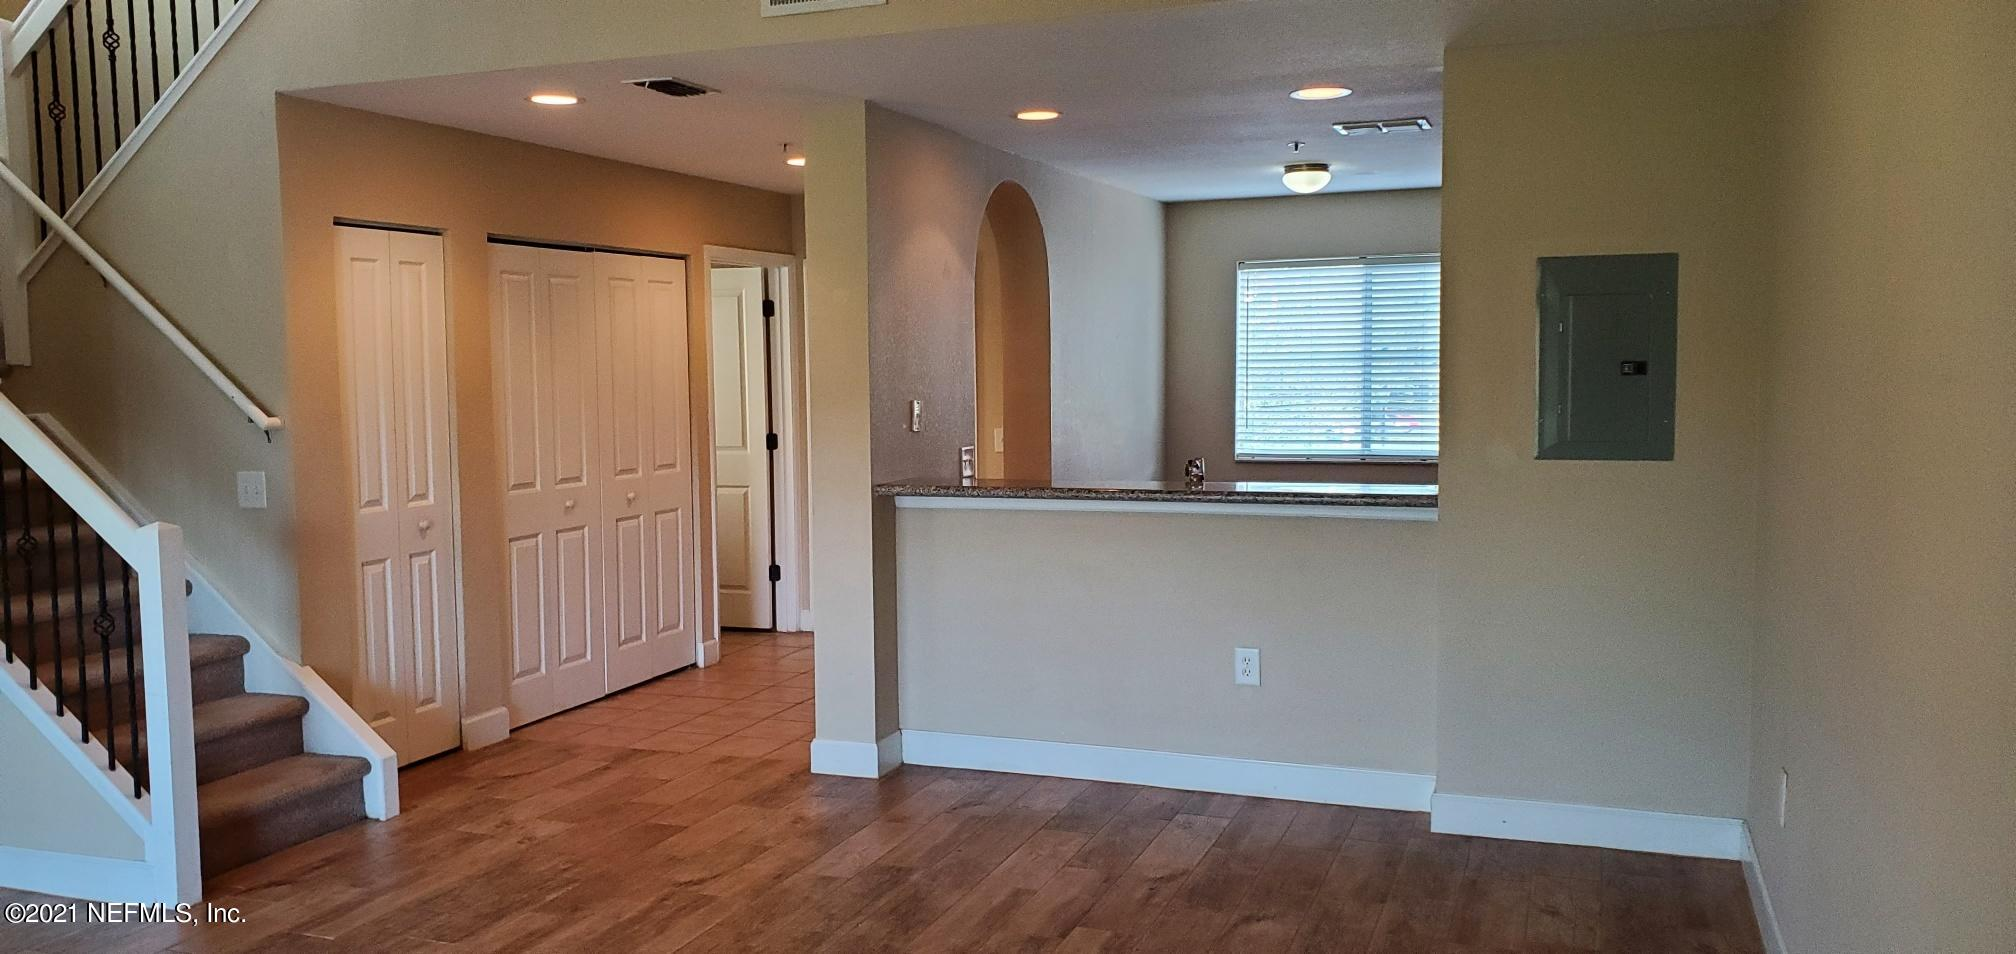 9745 TOUCHTON, JACKSONVILLE, FLORIDA 32246, 2 Bedrooms Bedrooms, ,2 BathroomsBathrooms,Residential,For sale,TOUCHTON,1108572